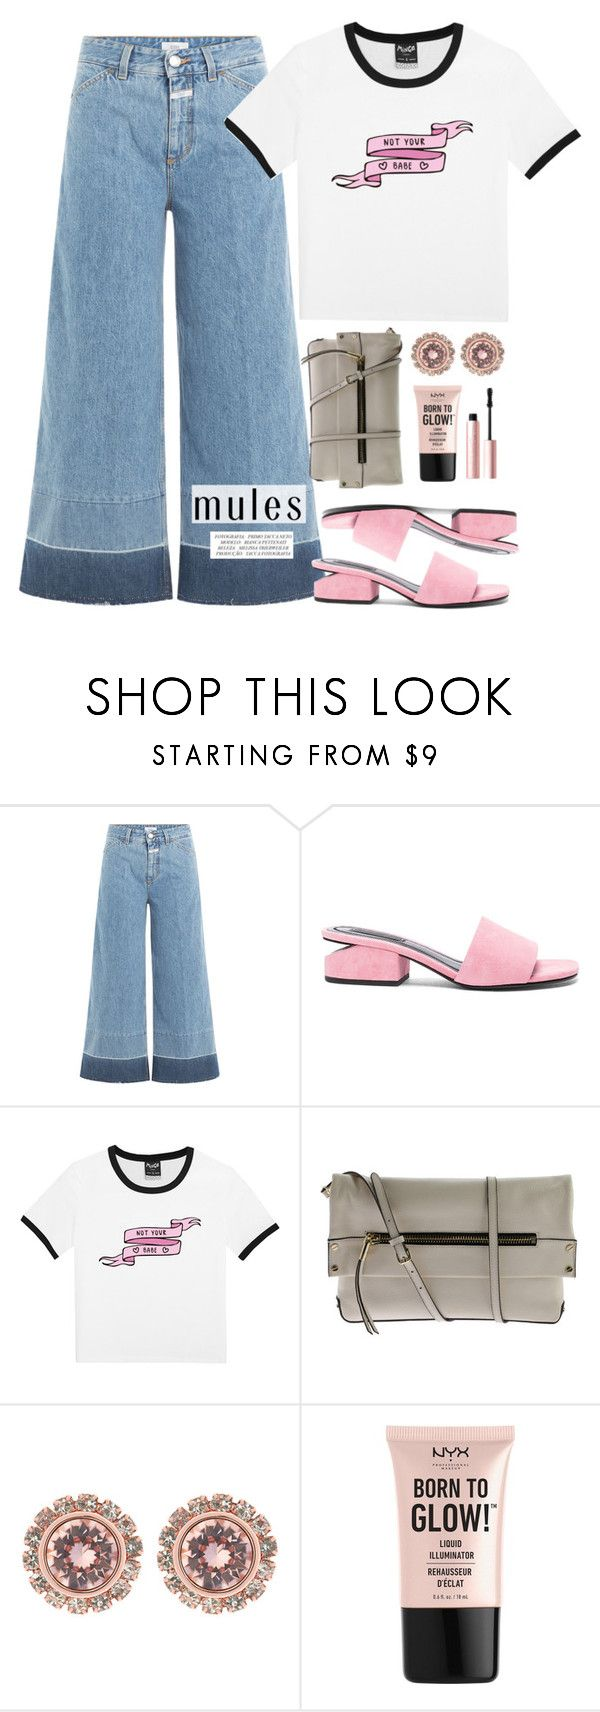 """""""Pink mules & denim culottes"""" by anja-jovanovich ❤ liked on Polyvore featuring Closed, Alexander Wang, Vince Camuto, Ted Baker, NYX and Too Faced Cosmetics"""